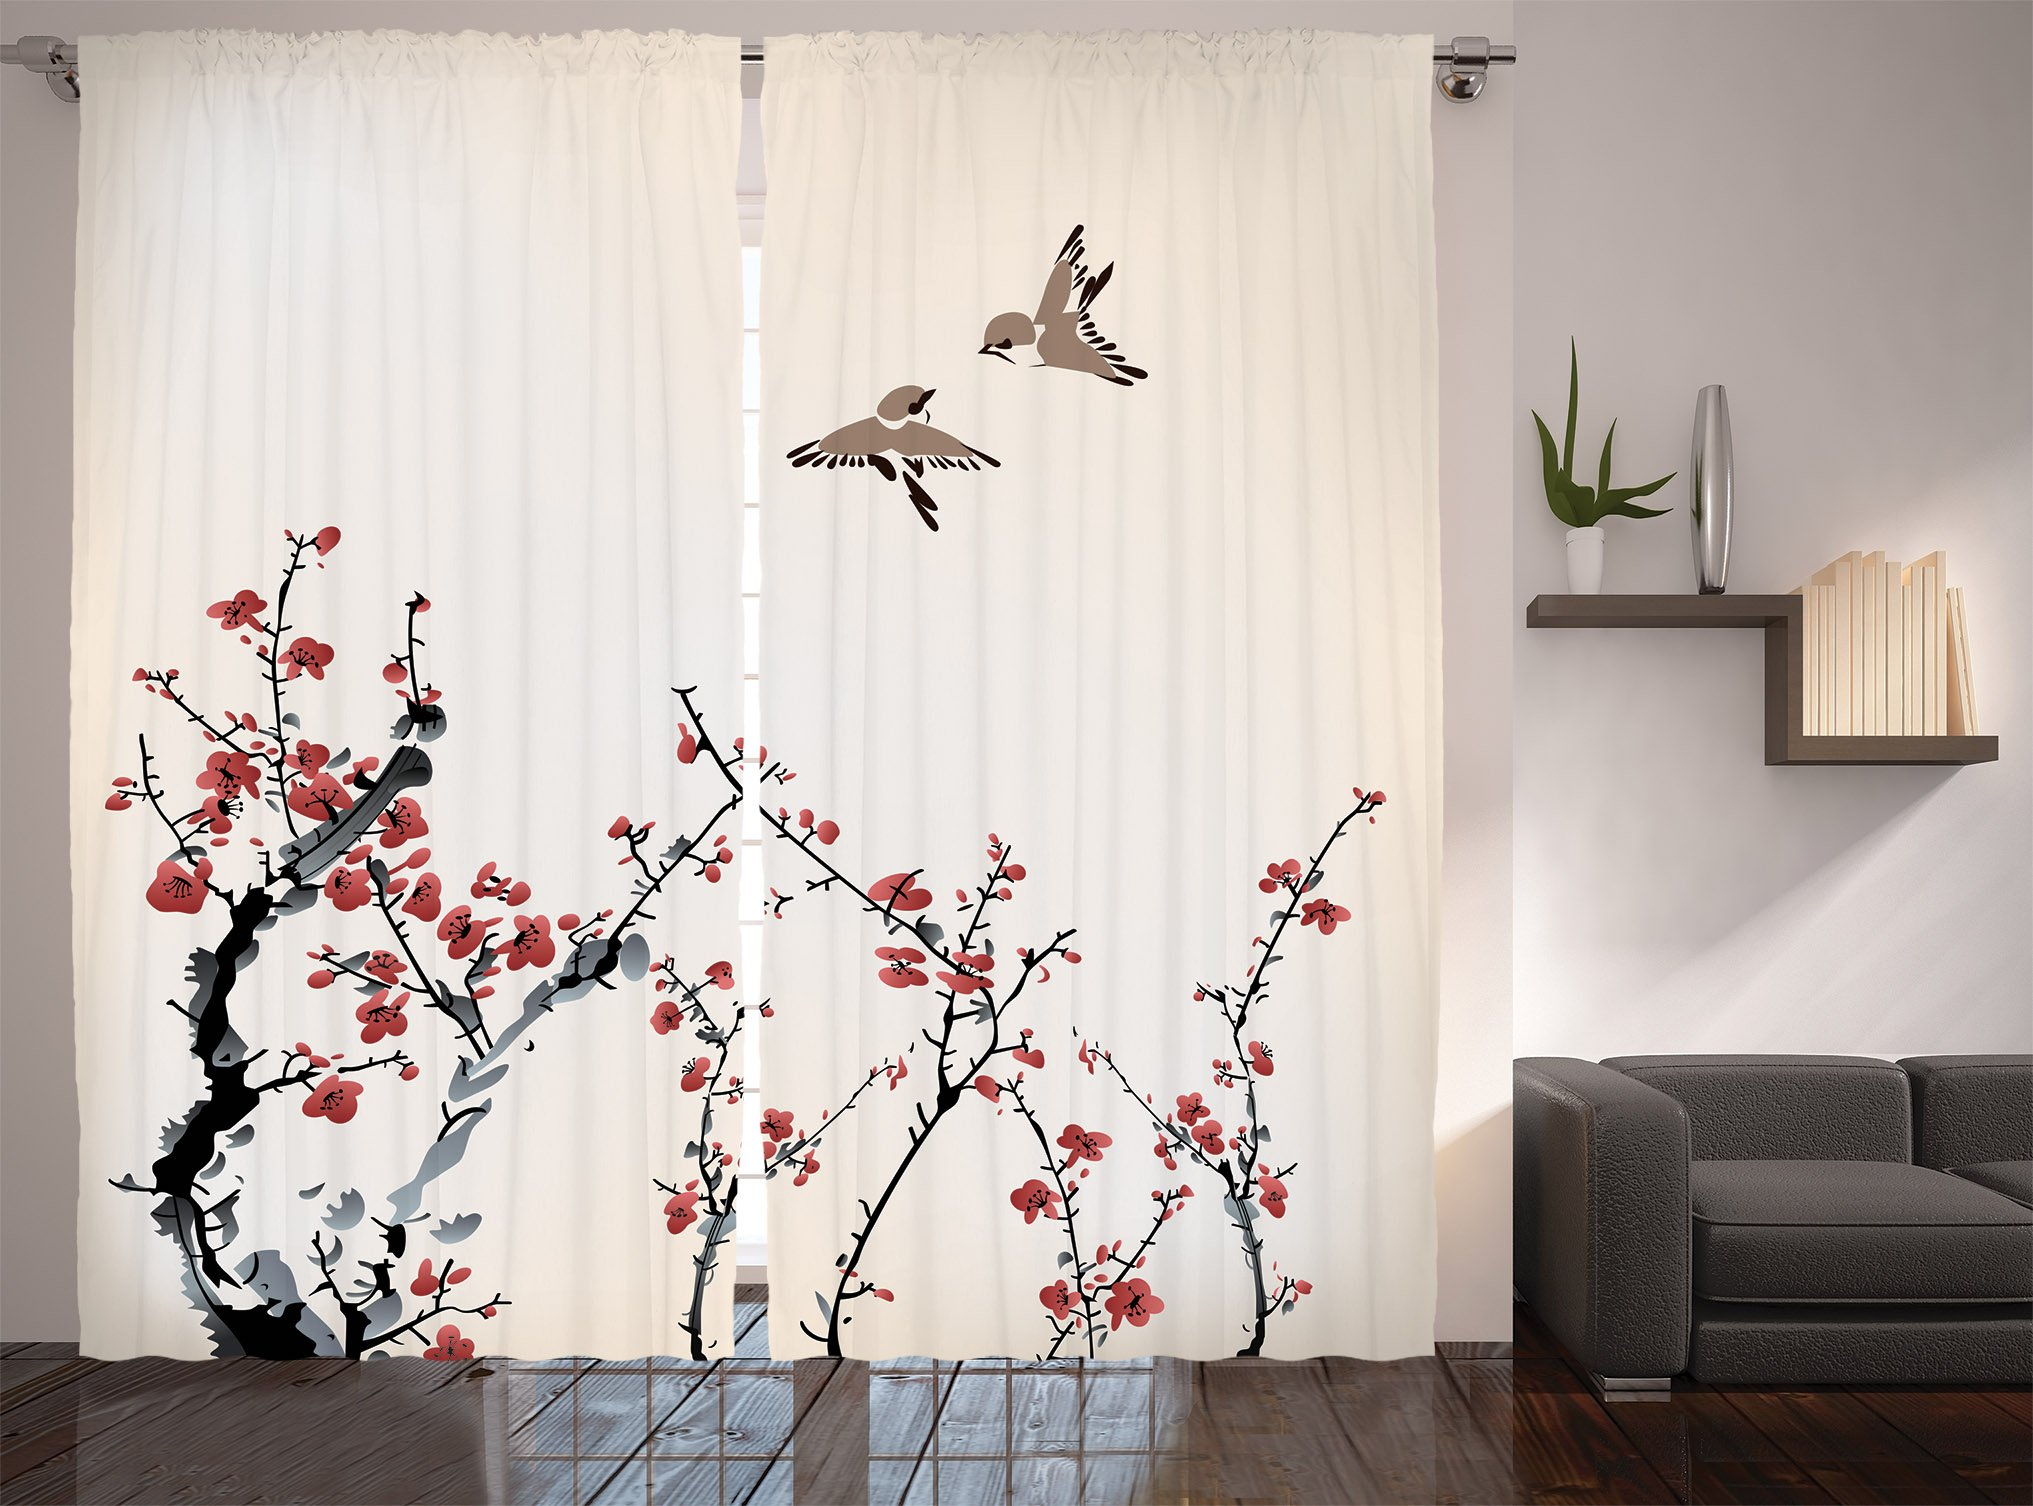 Ambesonne Watercolor Flowers Decor Collection, Spring Cherry Branches Blooms and Birds in Classic Design, Window Treatments, Living Room Bedroom Curtain 2 Panels Set, 108 X 84 Inches, Paprika Ivory by Ambesonne